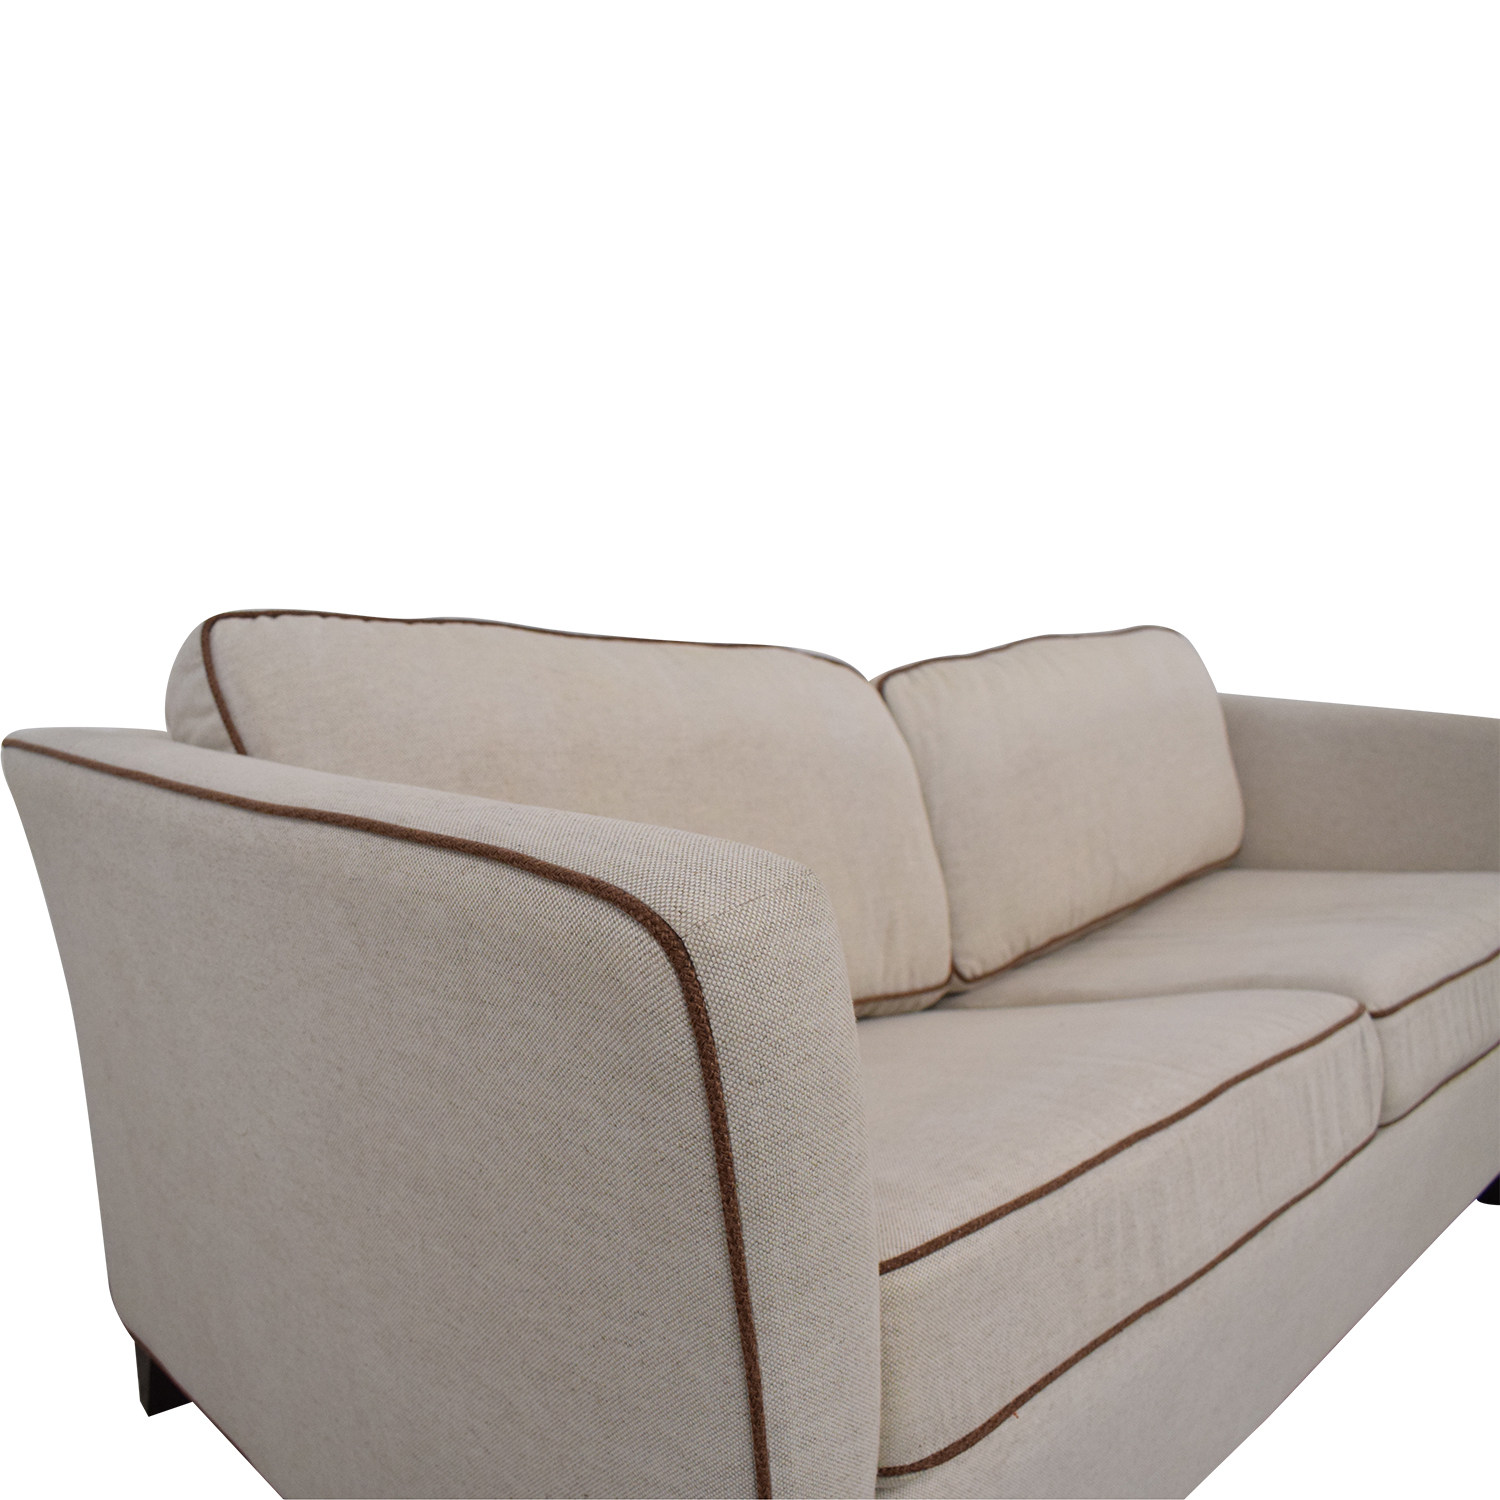 Carlyle Carlyle Sandy Sofa Bed Sofa Beds